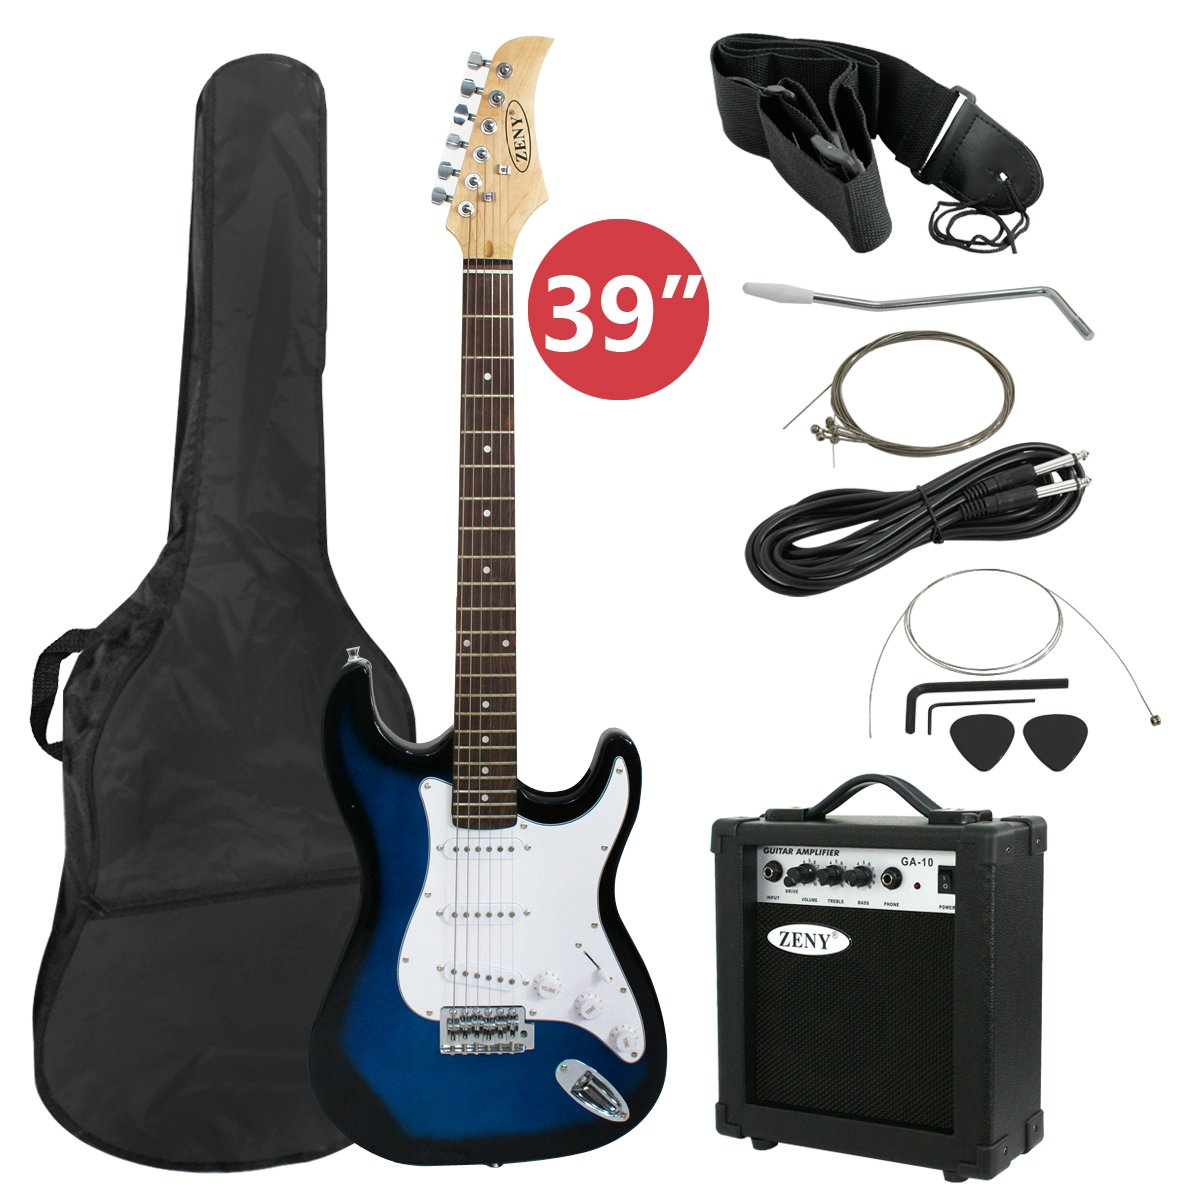 Best Rated In Electric Guitar Beginner Kits Helpful Customer Austin Stratocaster Wiring Diagram Zeny 39 Full Size With Amp Case And Accessories Pack Starter